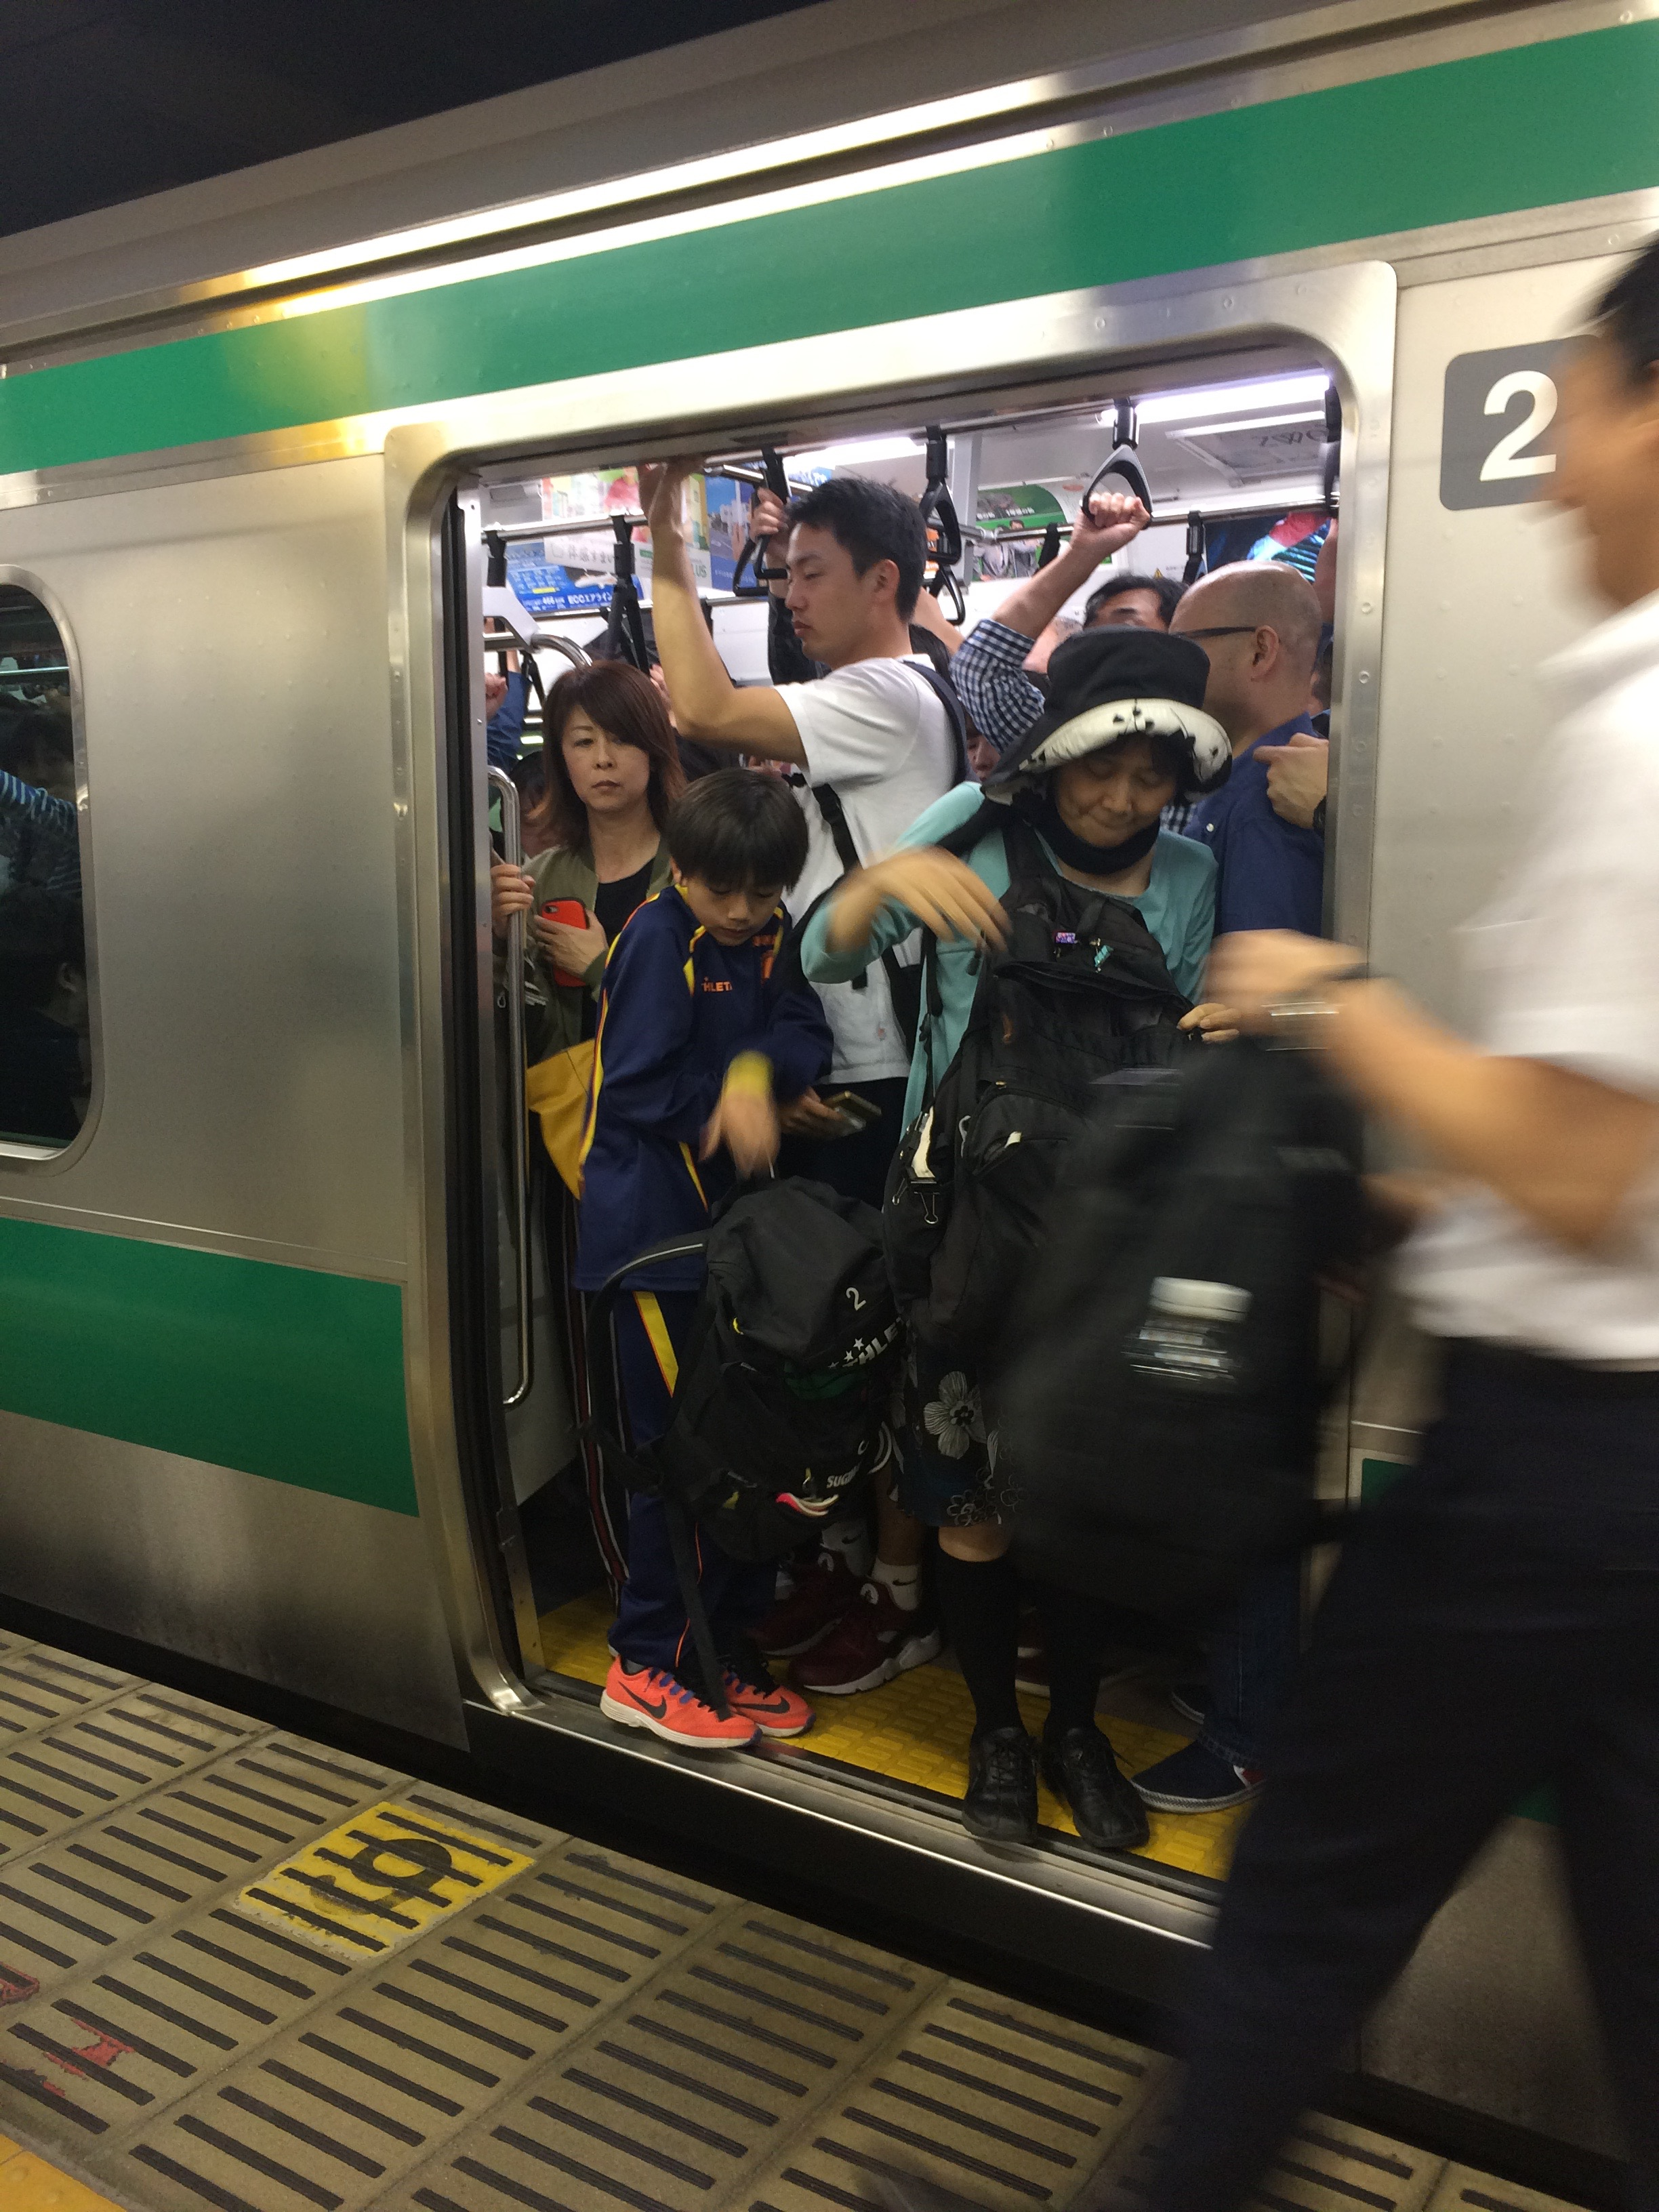 A crowded train in Tokyo.